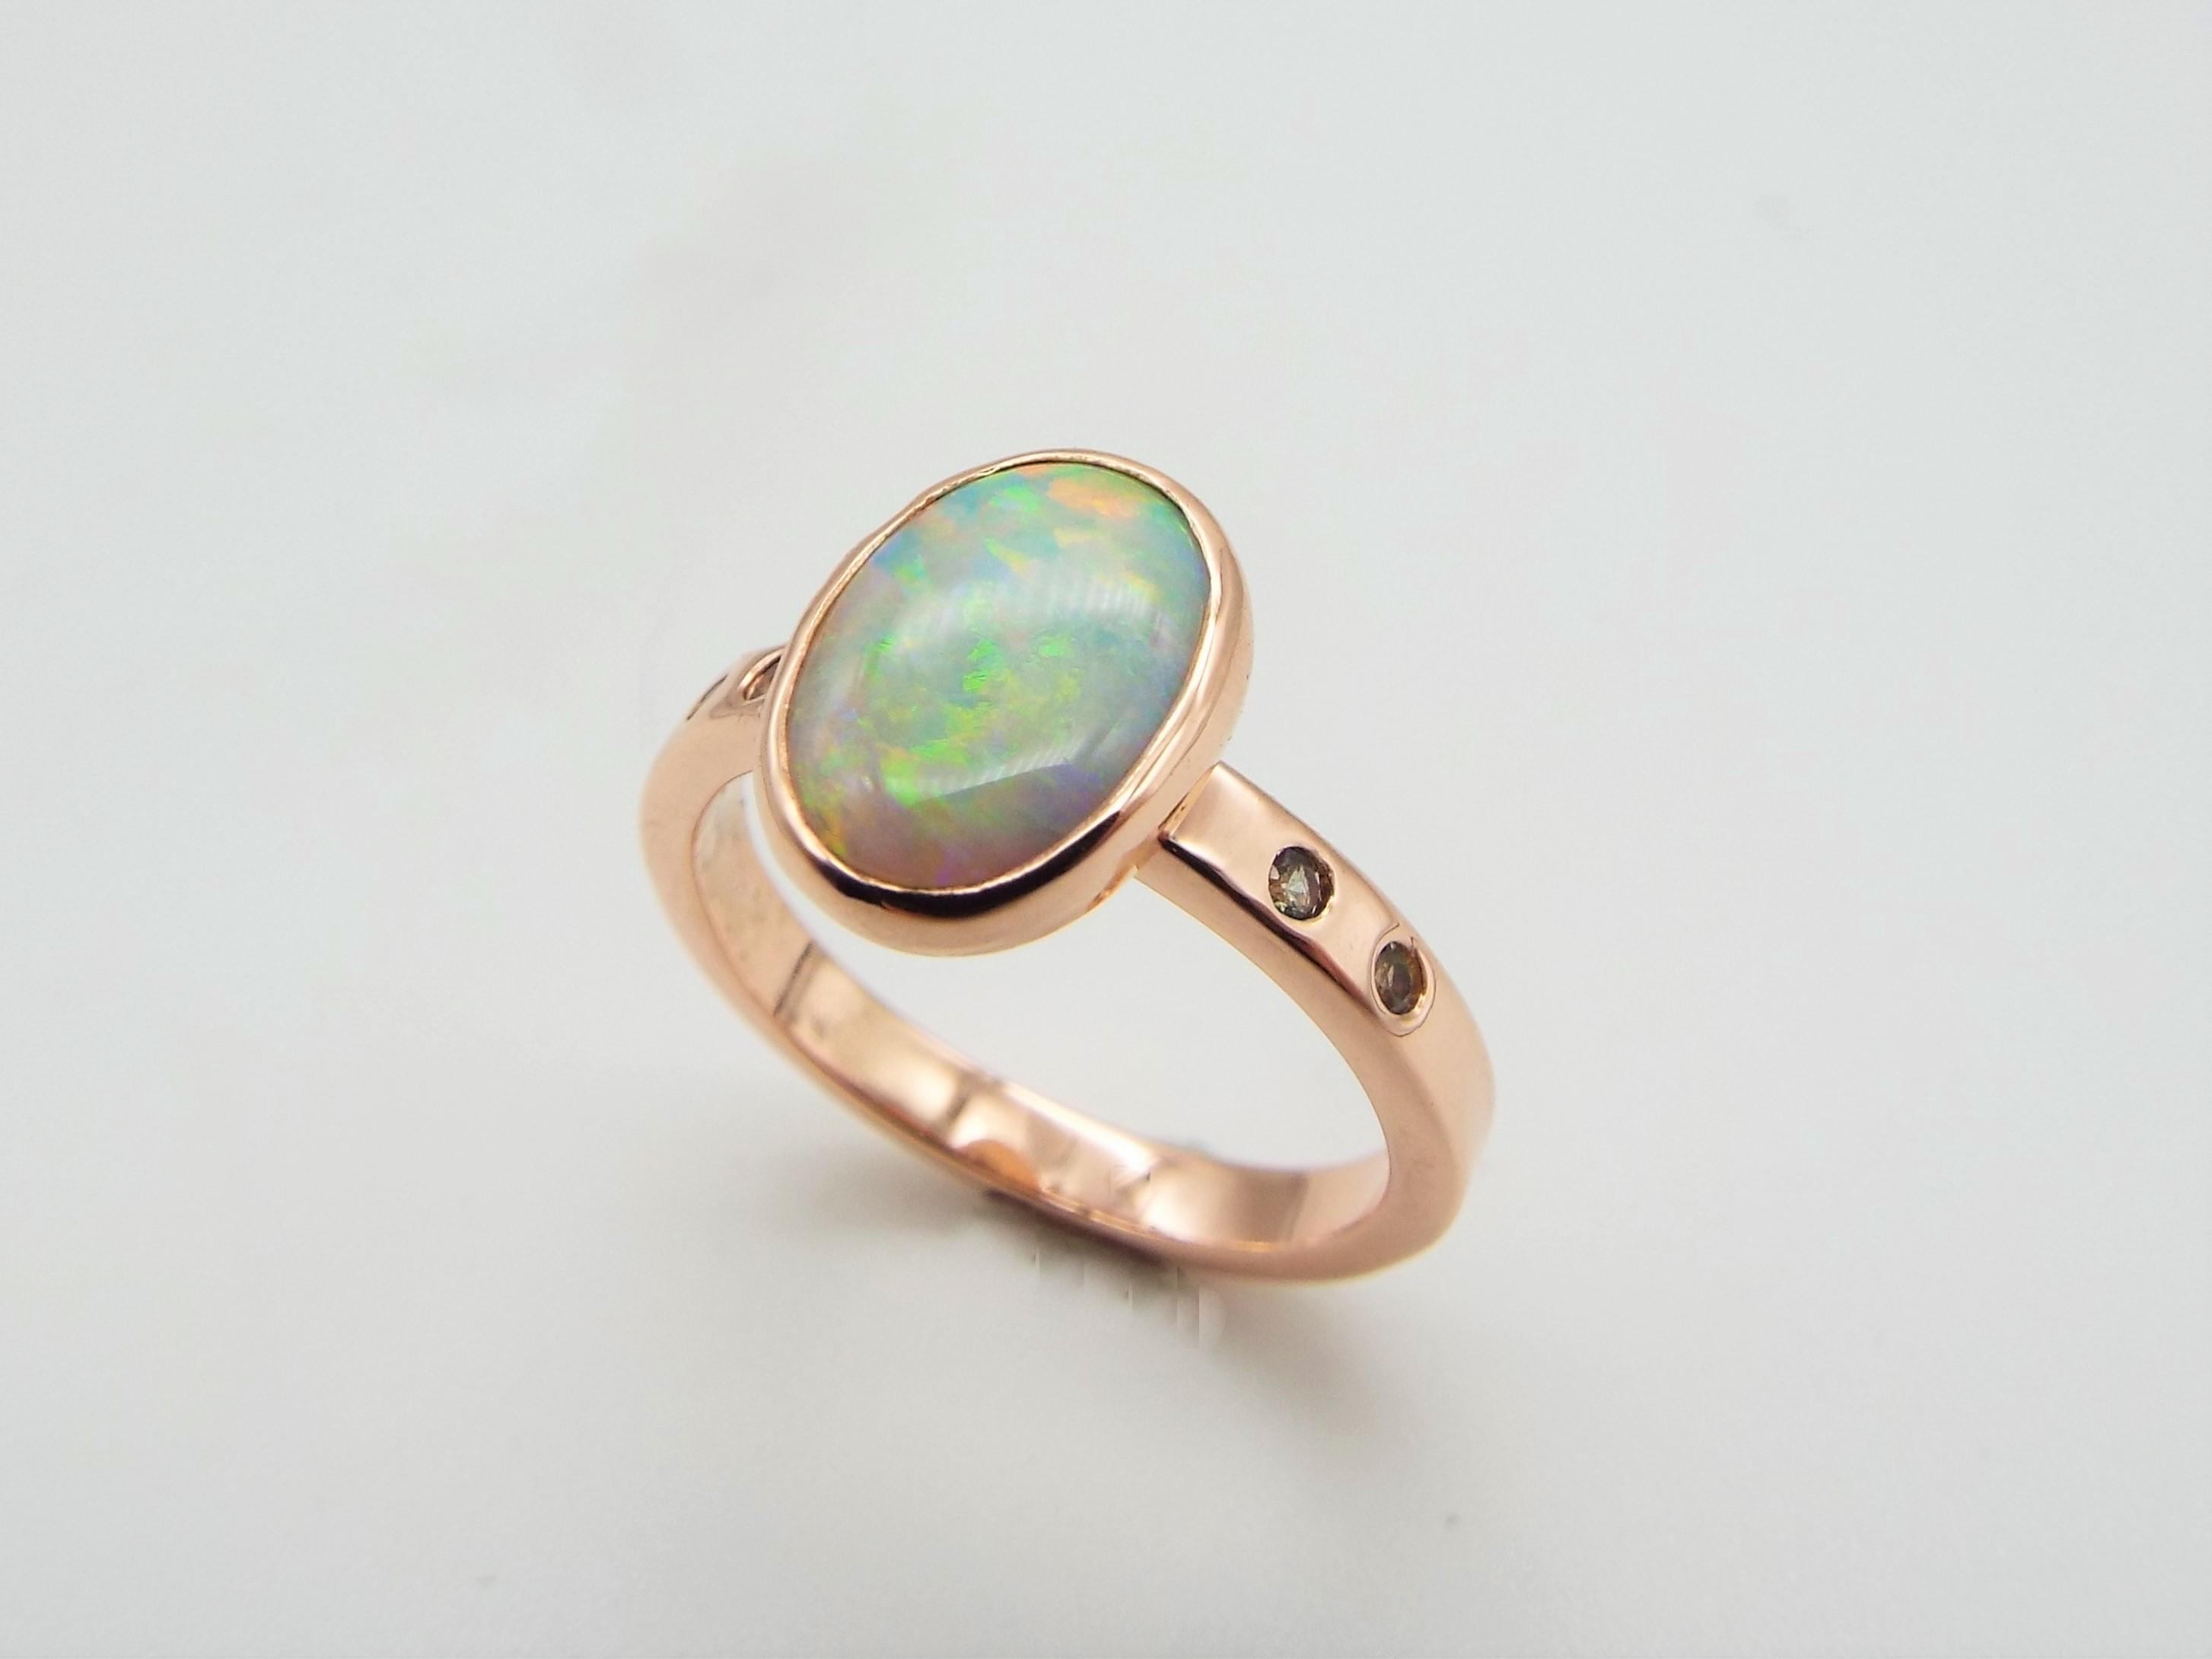 Opal, Green sapphire and Rose gold ring